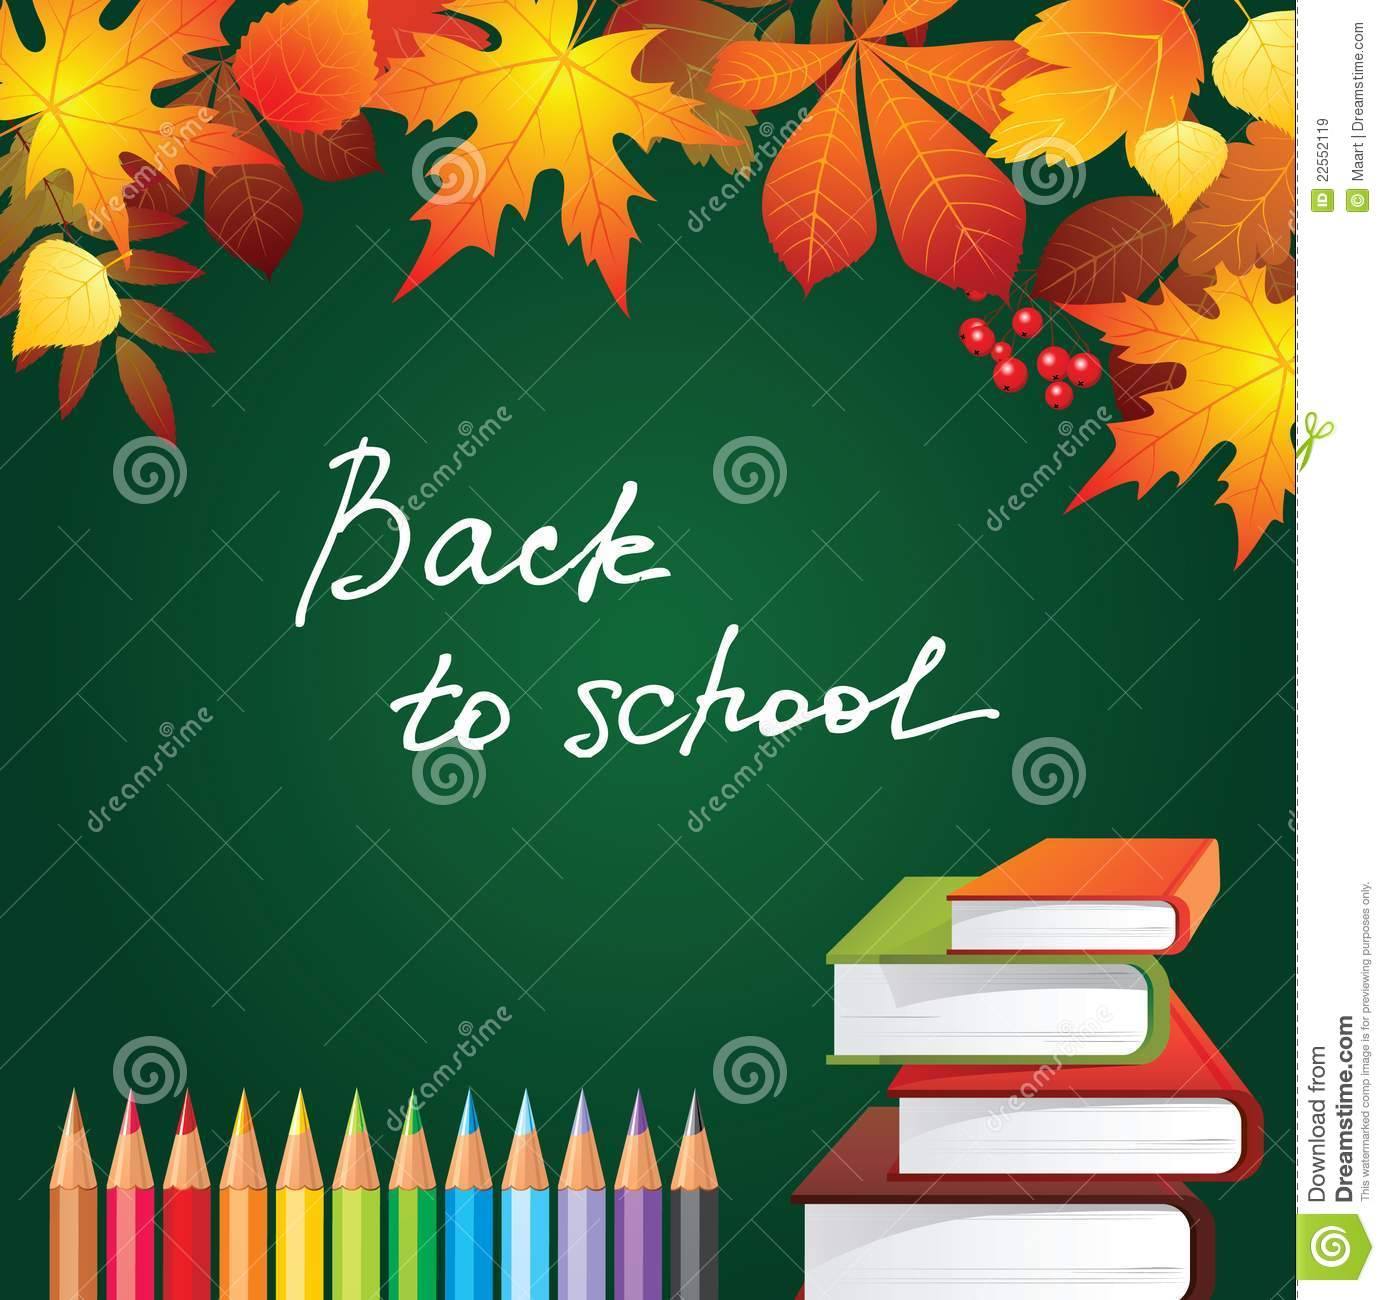 back to school background - photo #19